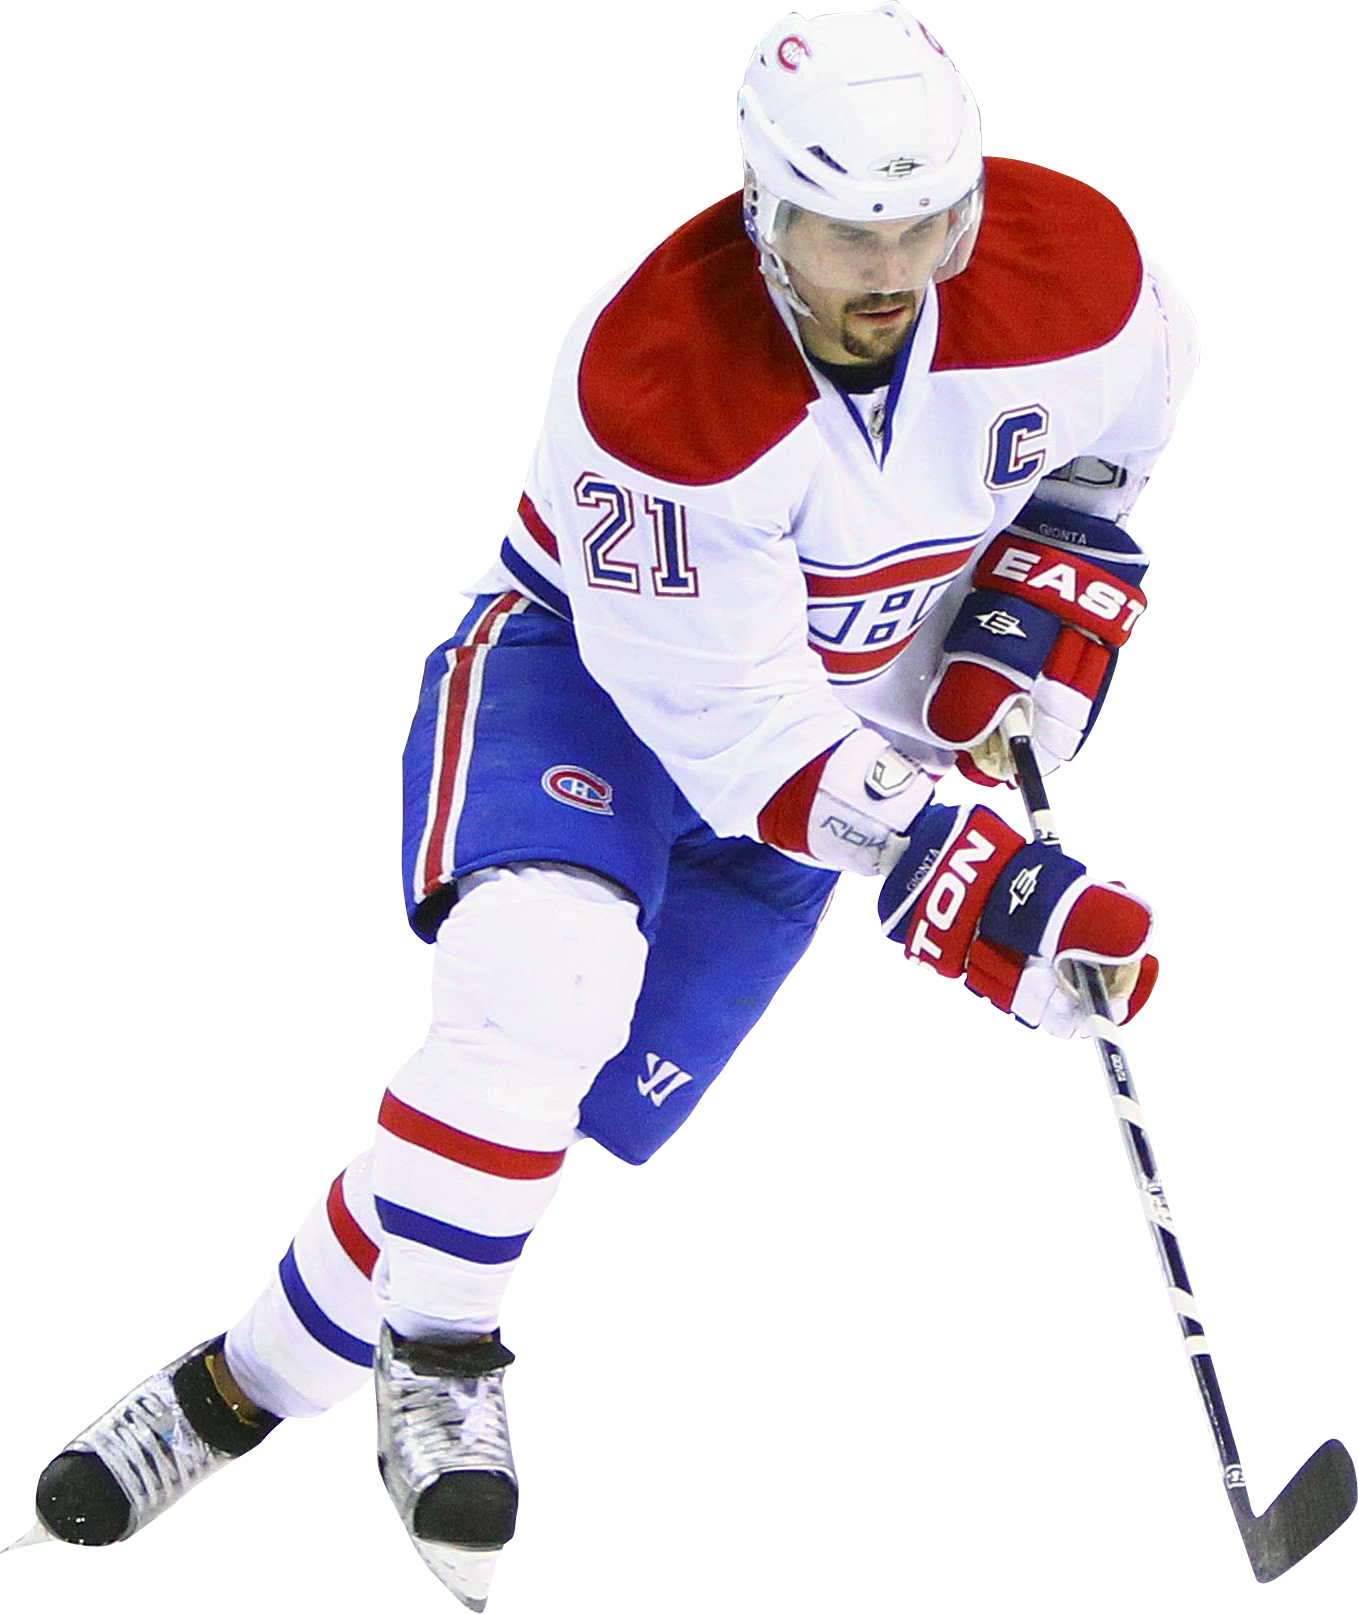 Player png image purepng. Hockey clipart montreal canadiens